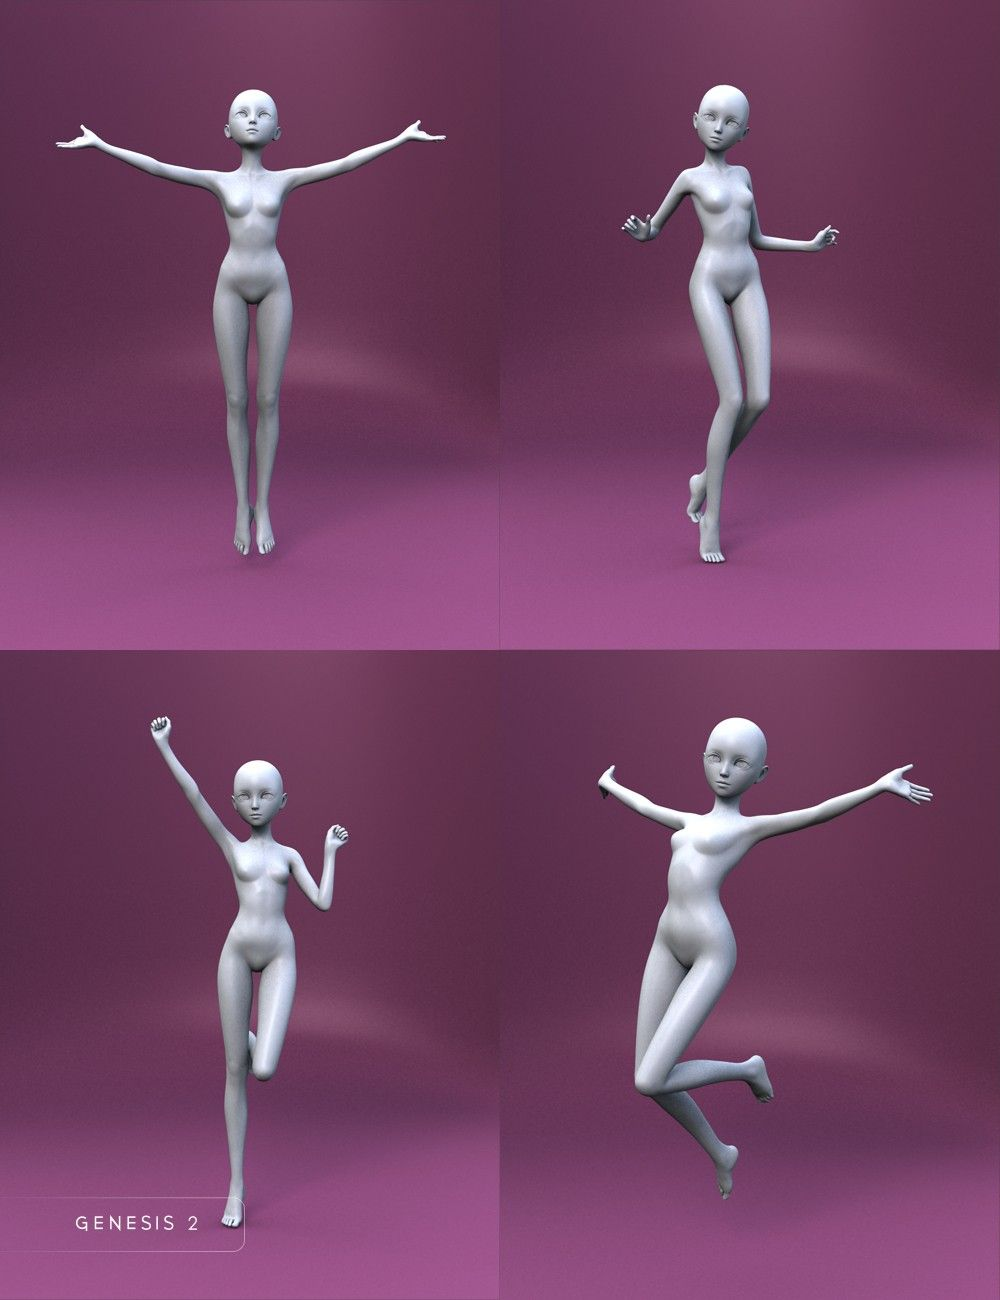 Bell Anime Poses For Keiko 6 And Aiko 6 3d Models And 3d Software By Daz 3d Anime Poses Pose Reference Jumping Poses